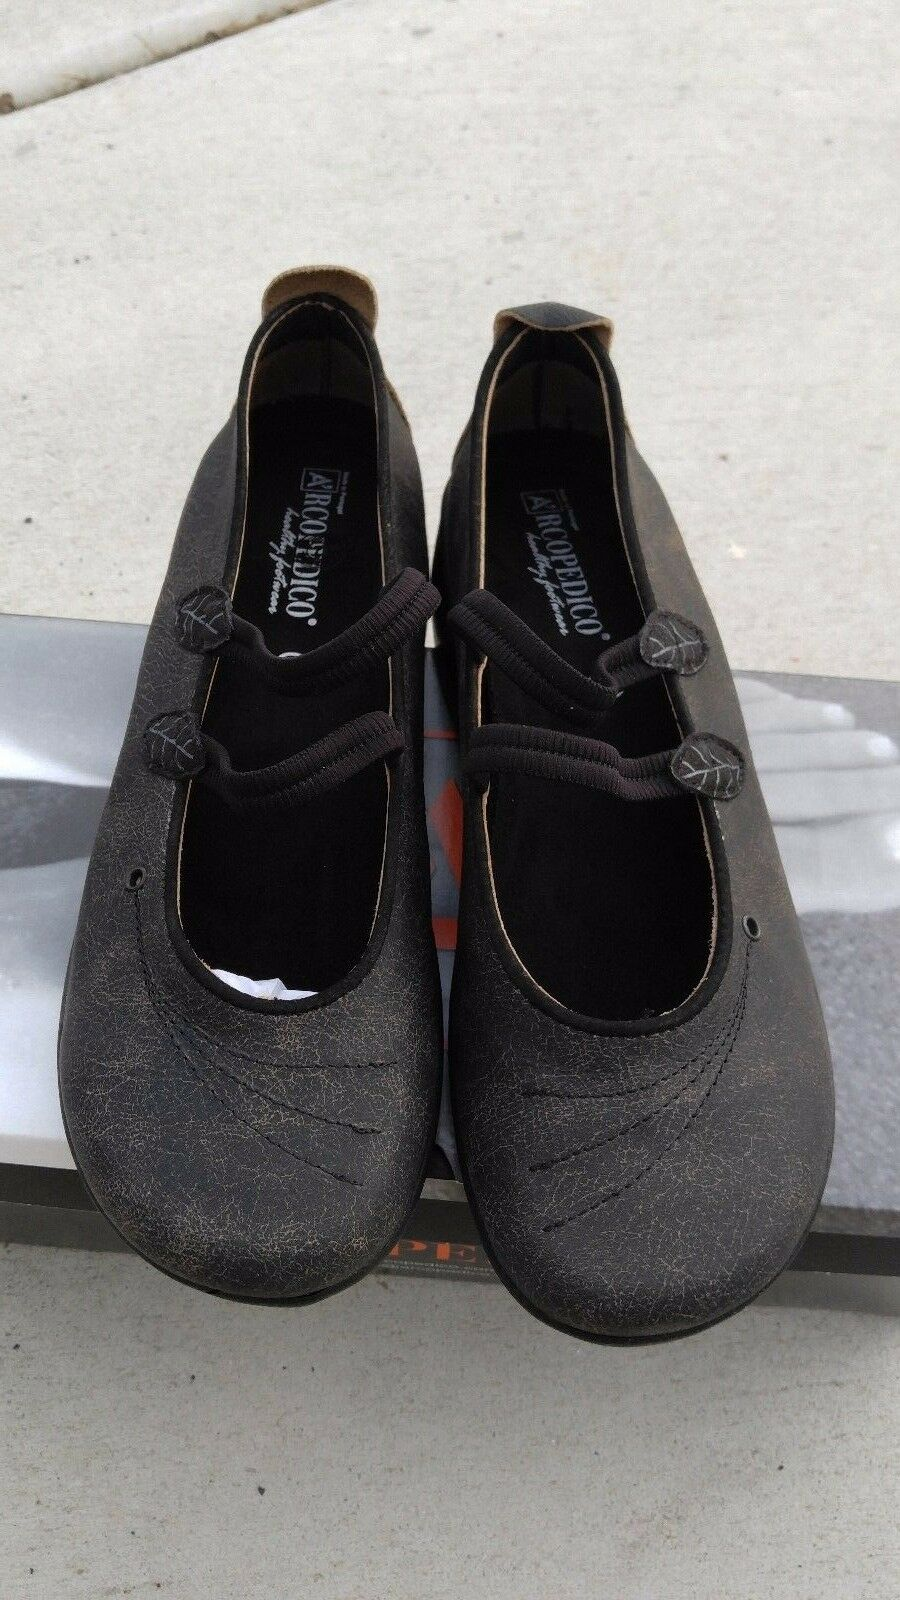 New Arcopedico 6383 Womens Blossom VB Black Ballet Flat shoes 40 EU   9 - 9.5 US